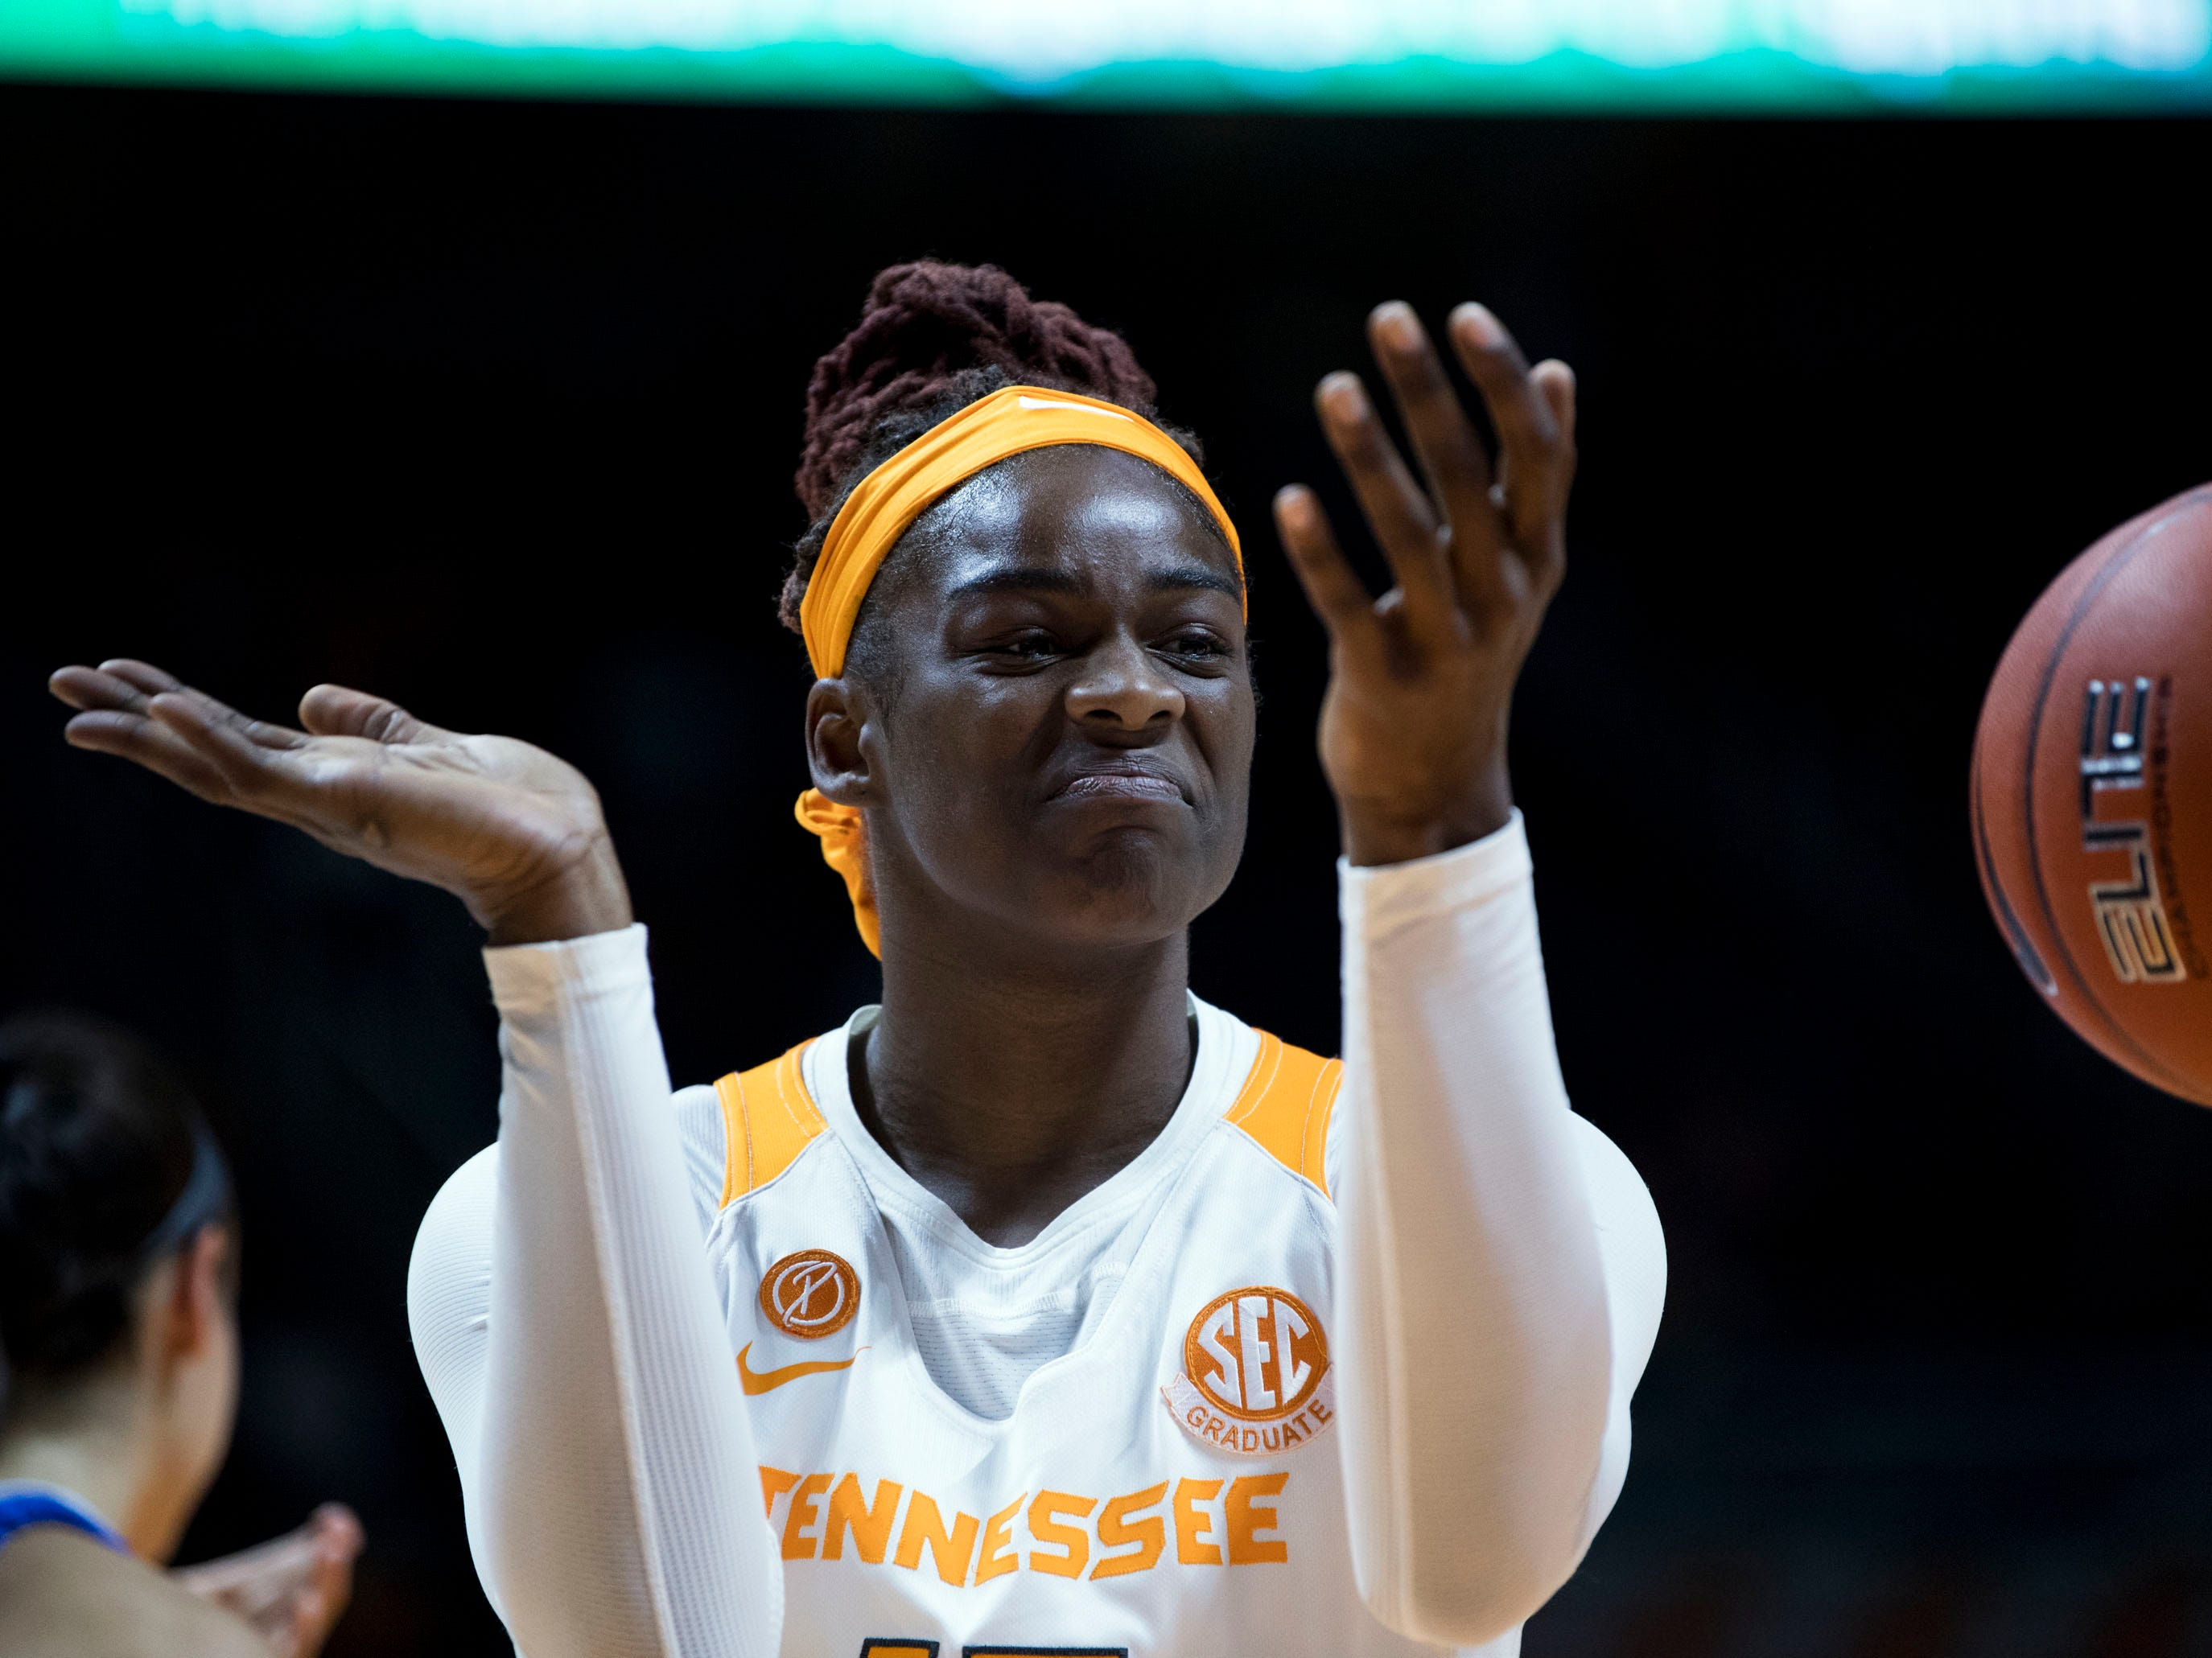 Tennessee's Cheridene Green (15) claps as her teammate scores against Kentucky on Thursday, January 10, 2019.